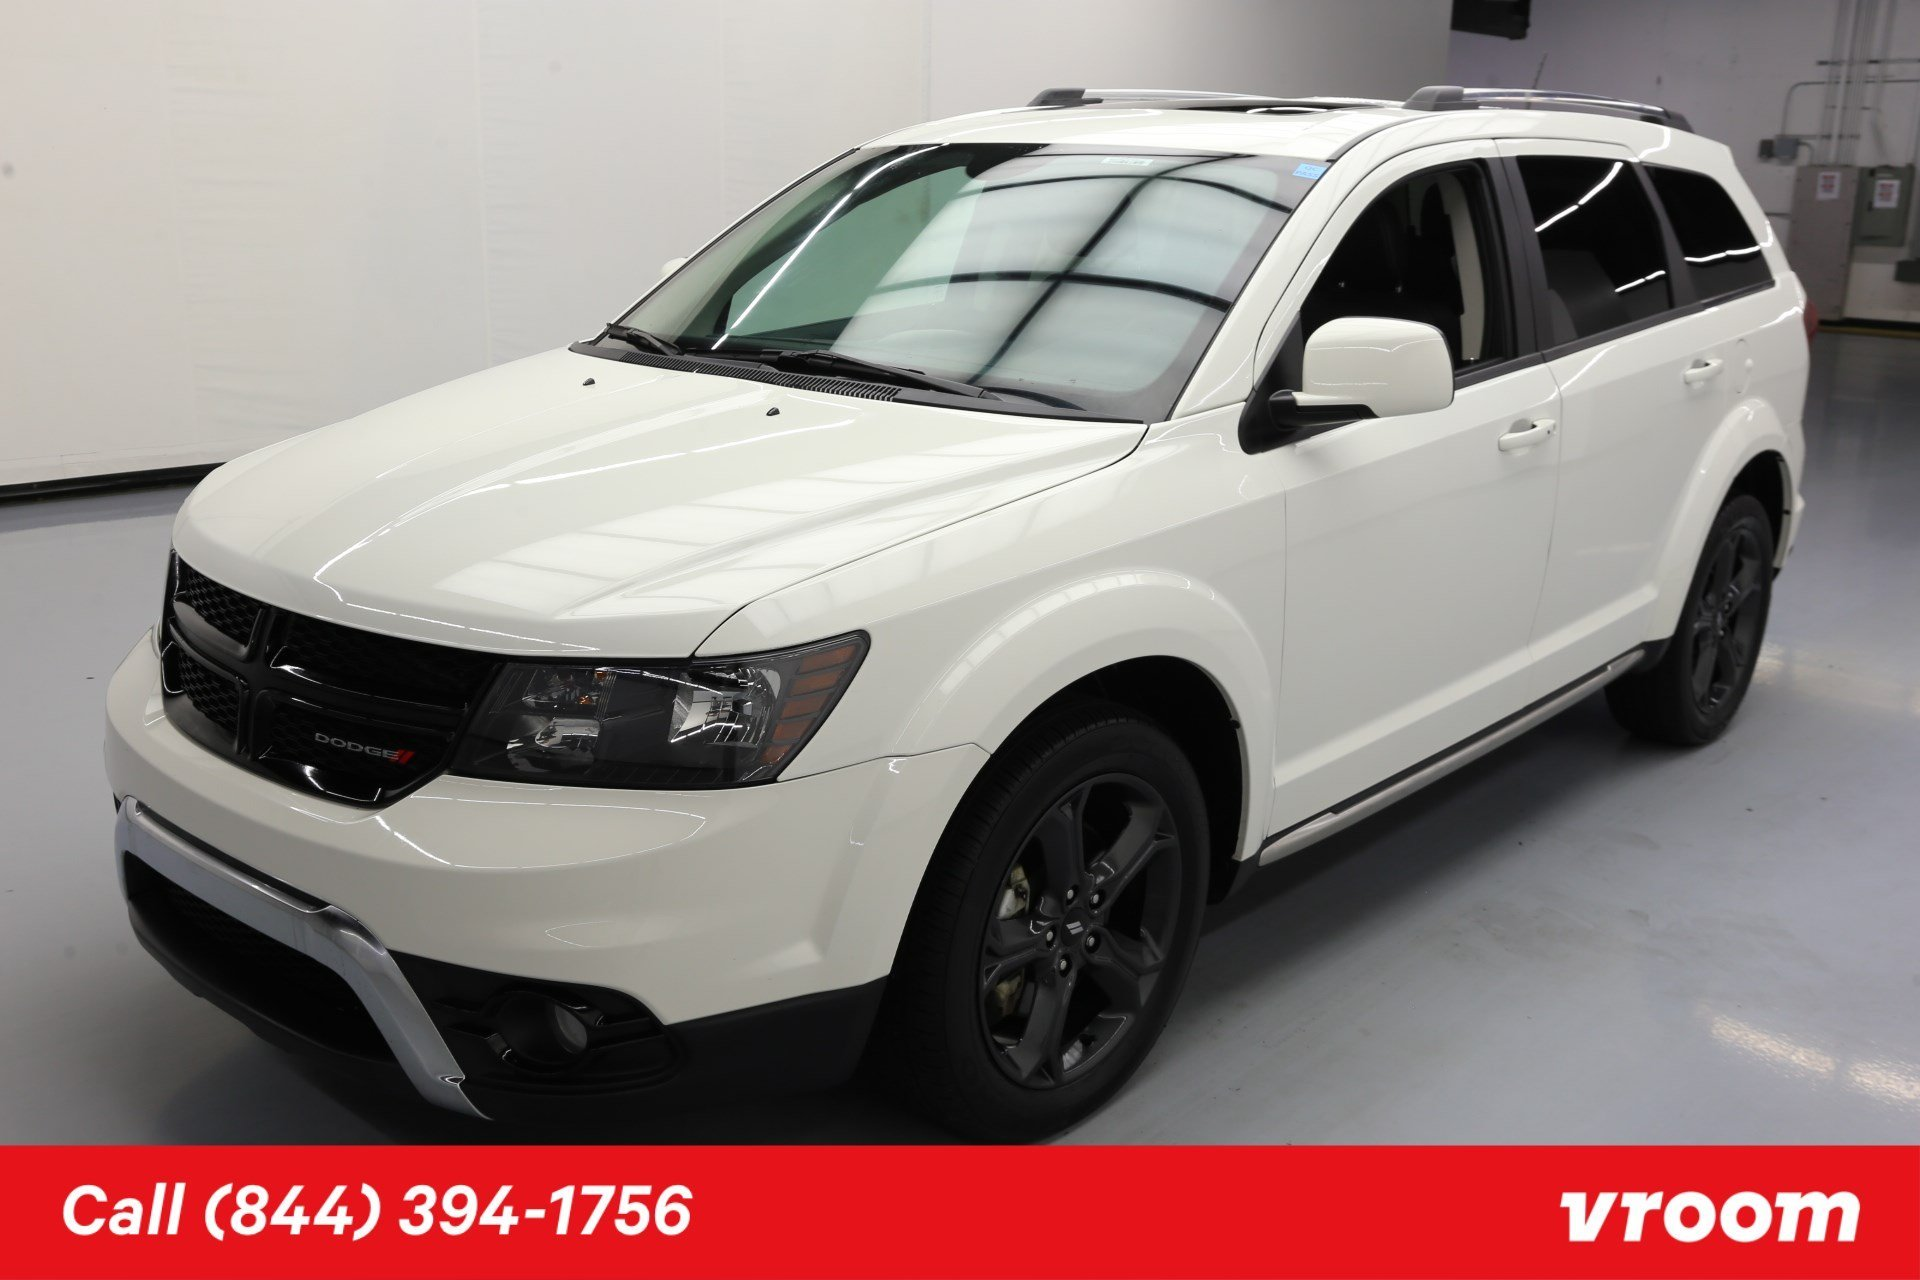 New 2019 Dodge Journey SE Value Package SE Value Package for sale $22,995 at M and V Leasing in Brooklyn NY 11223 1